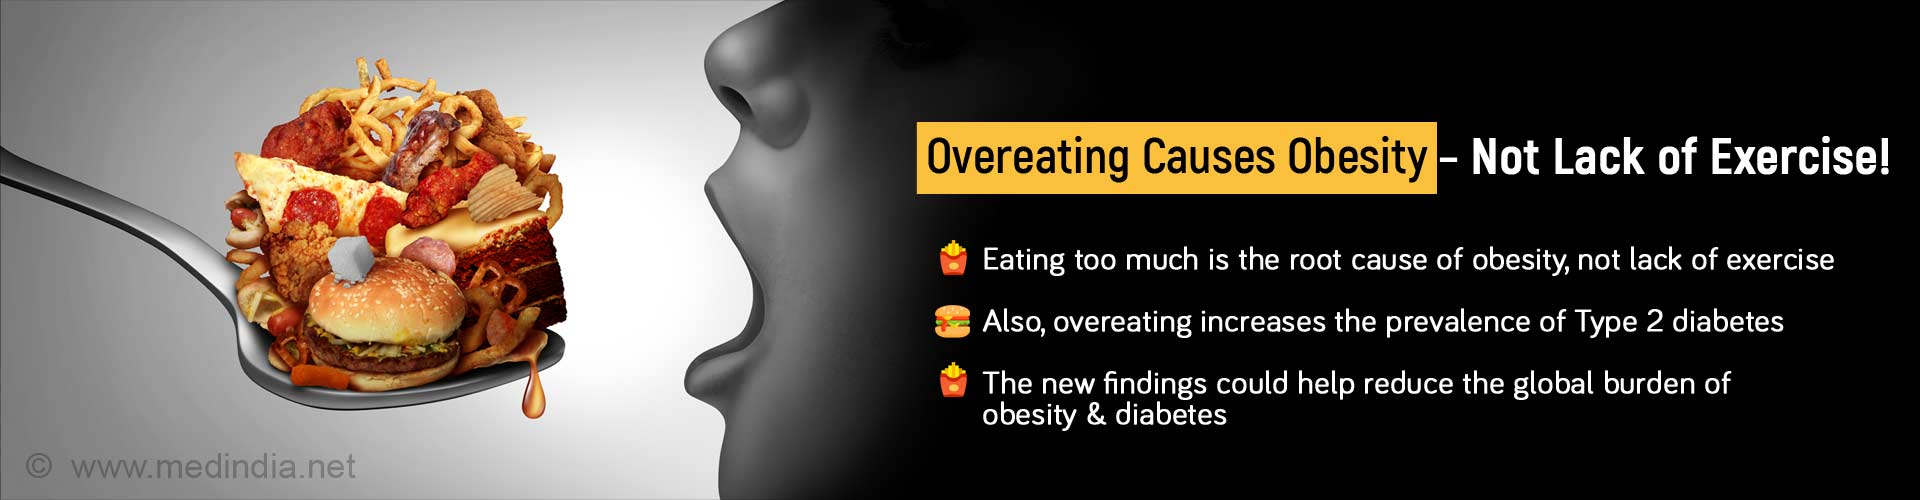 Overeating Causes Obesity, Not Lack of Exercise. Eating too much is the root cause of obesity, not lack of exercise. Also, overeating increases the prevalence of Type 2 diabetes. The new findings could help reduce the global burden of obesity and diabetes.